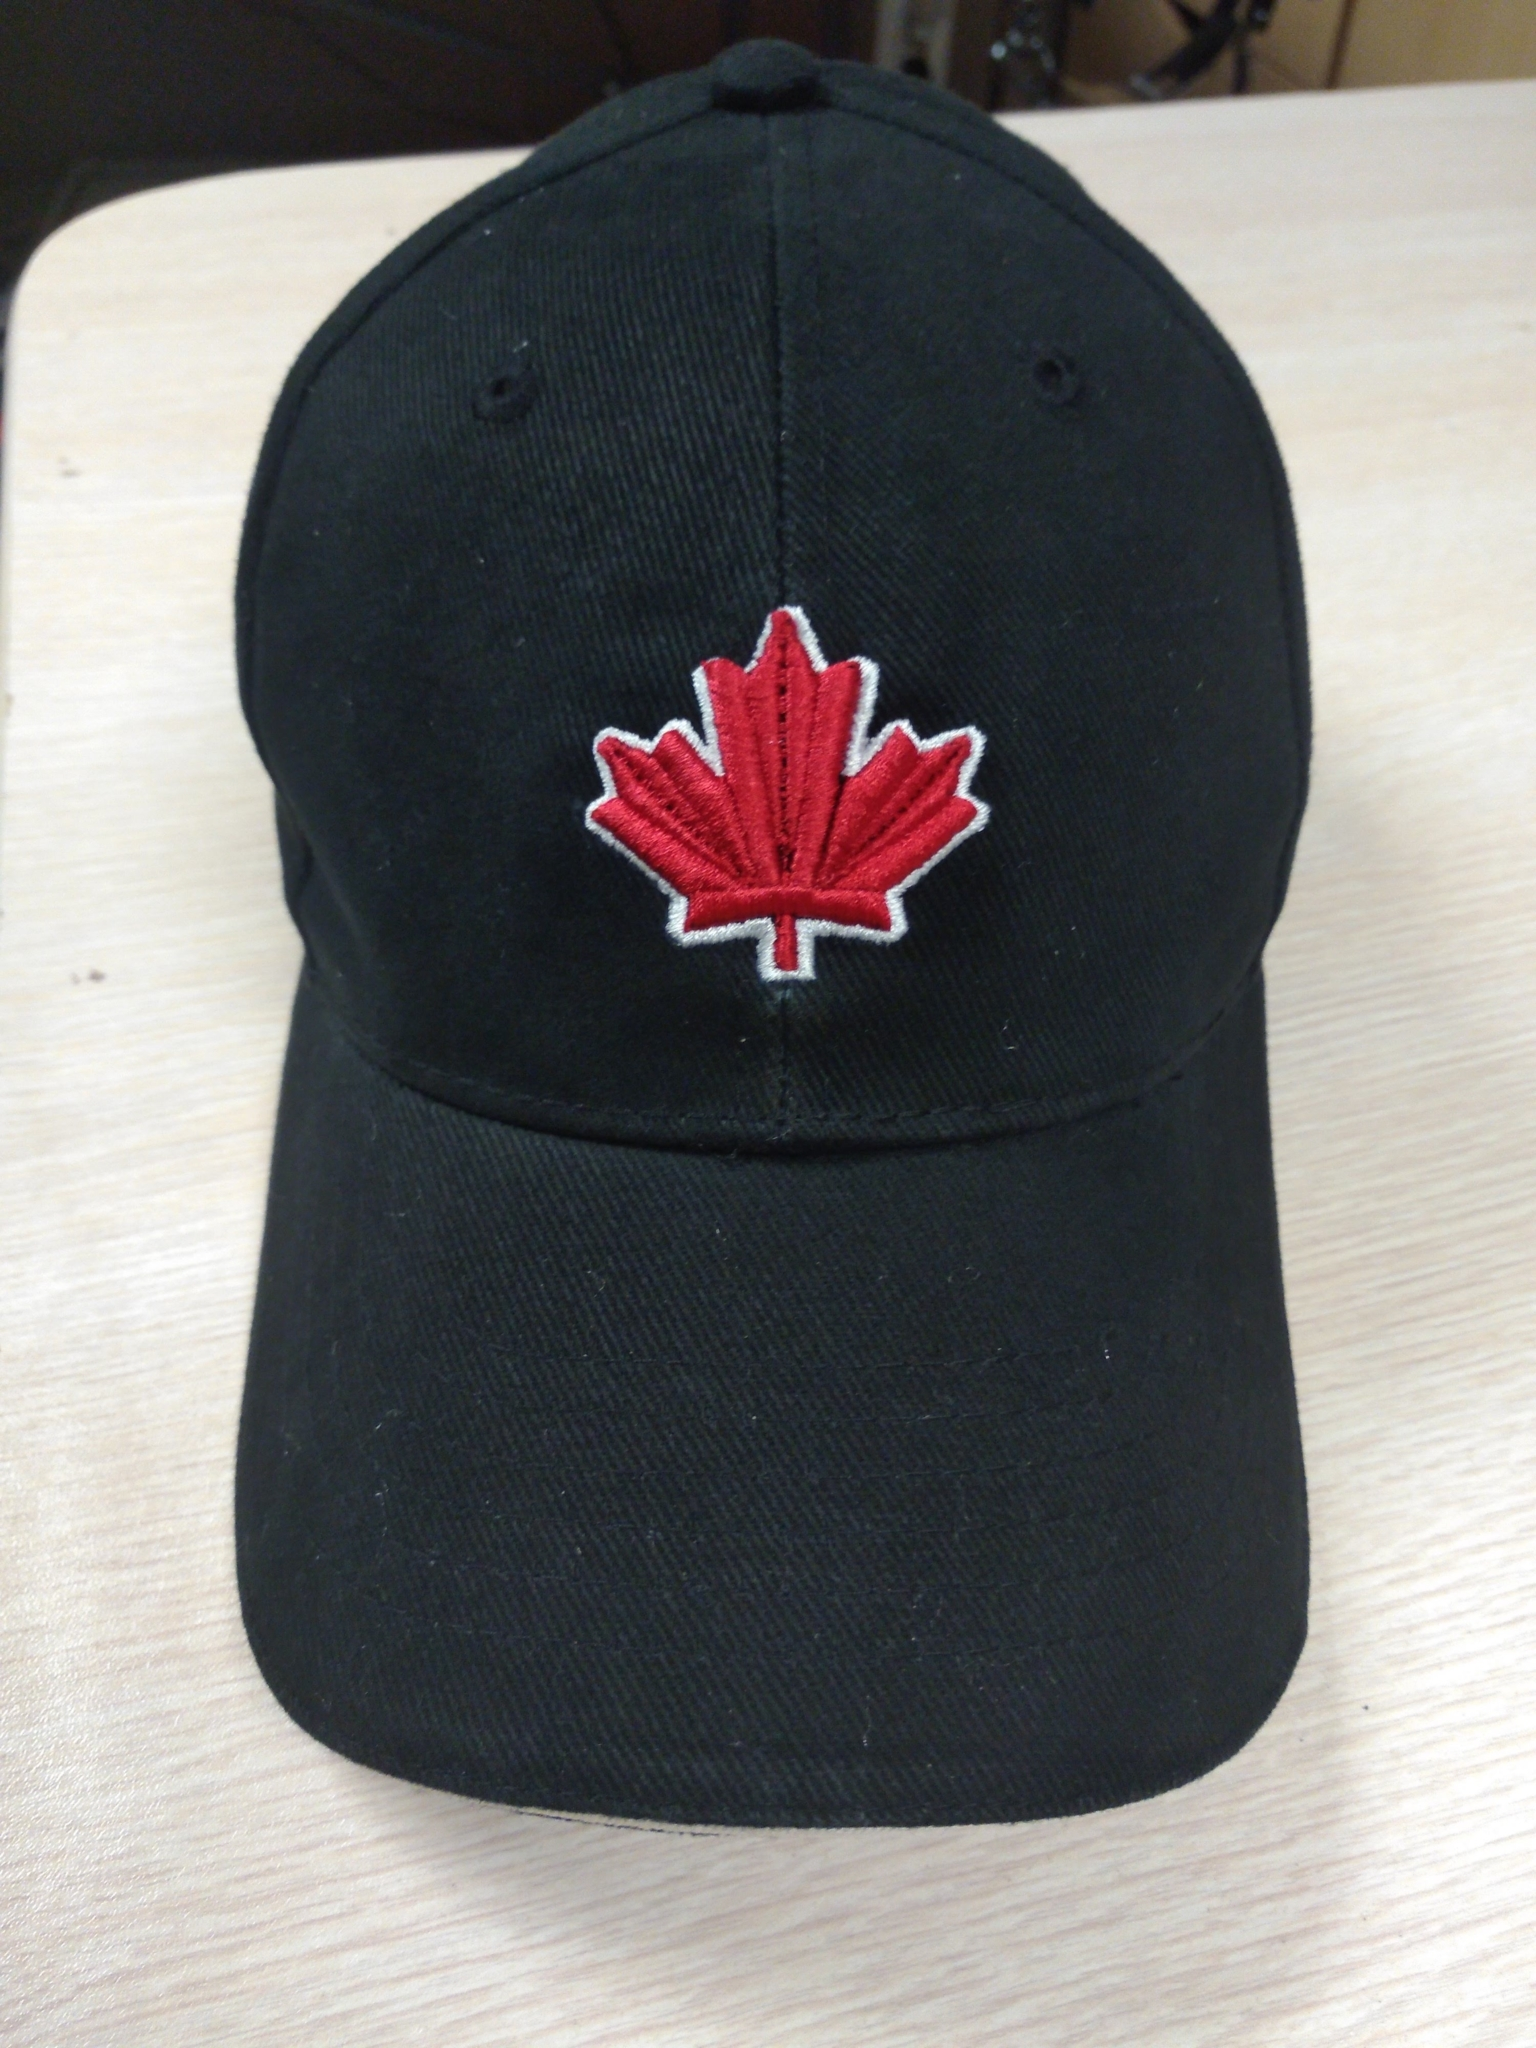 Just My Lids in Scarborough: Custom hat embroidery is what we do best. Please contact us for a quote. We offer volume discounts on large orders.